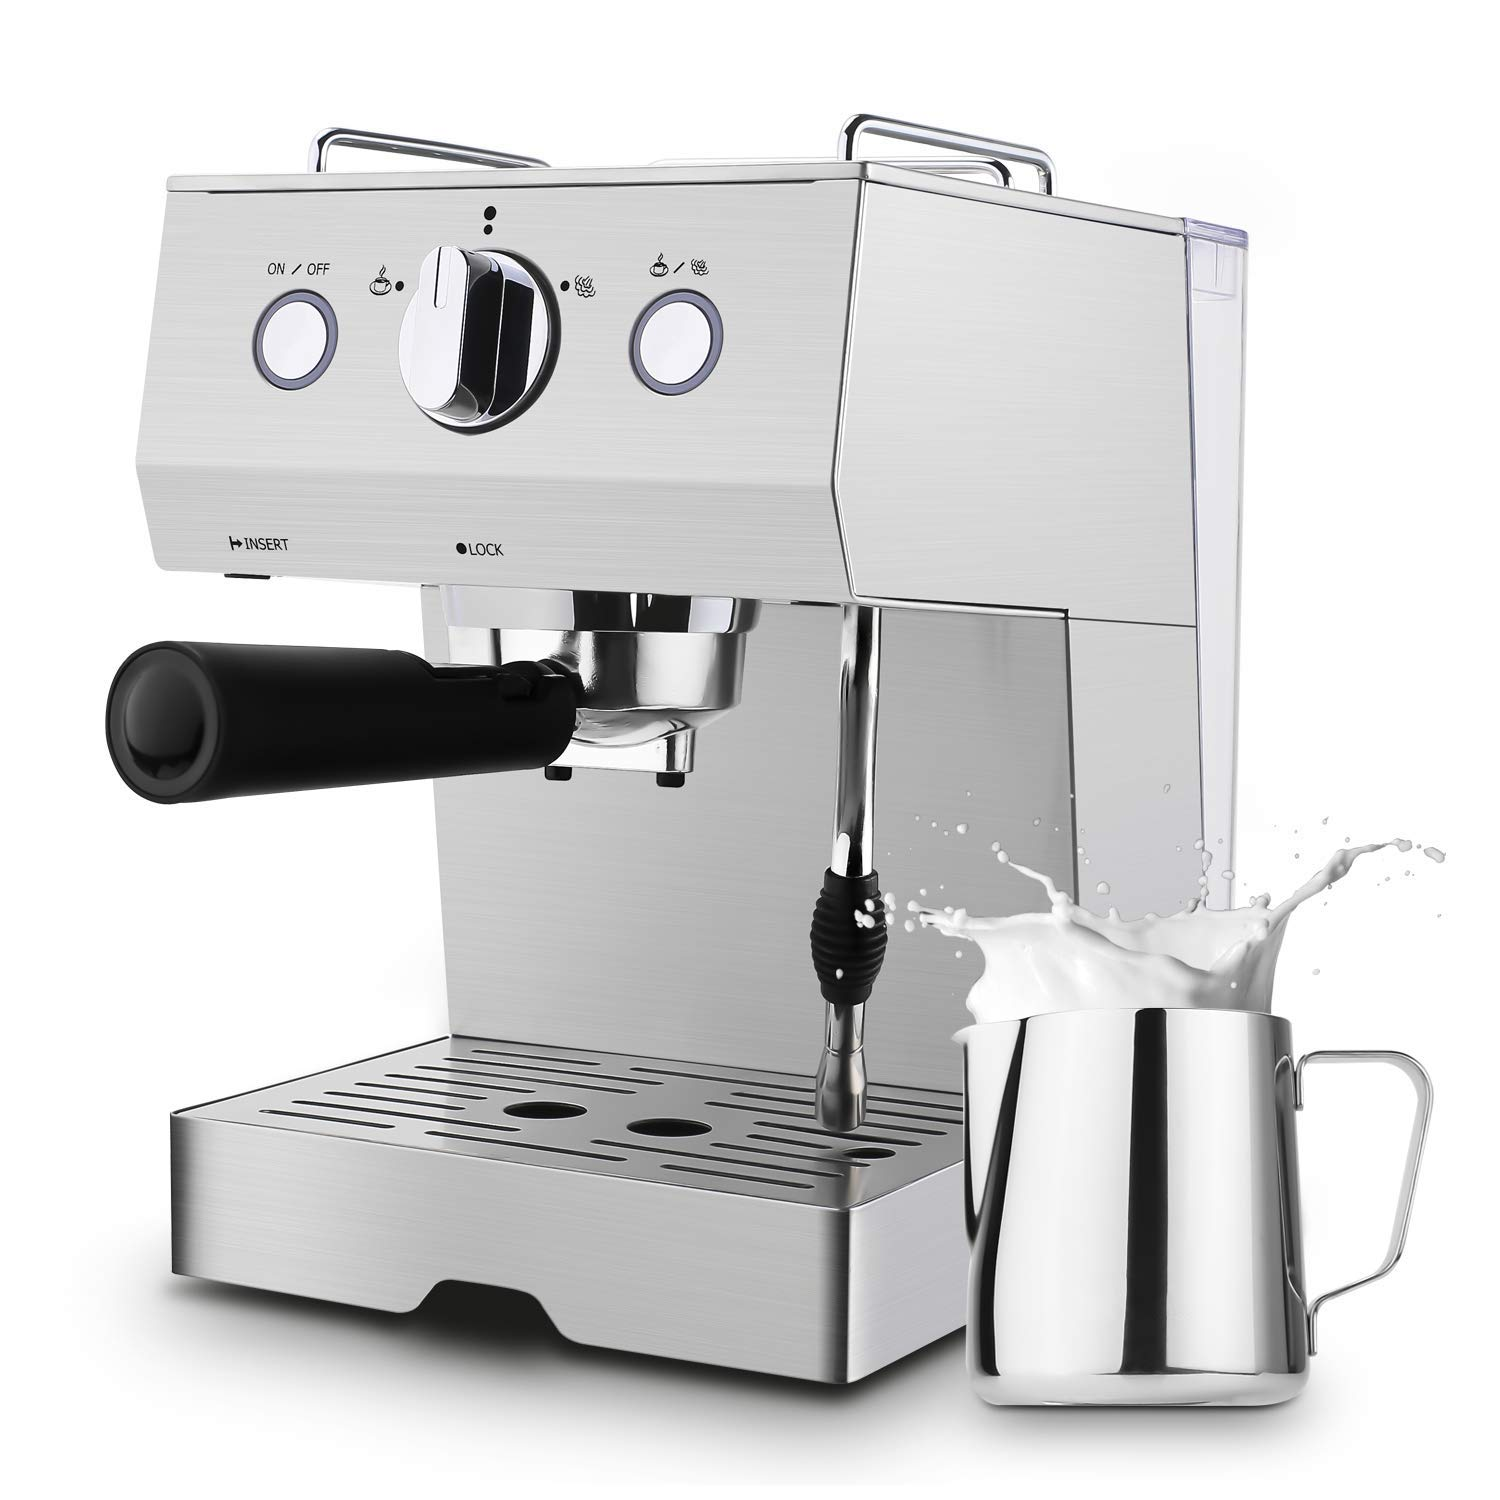 Espresso Machine Barsetto Coffee Machine 15 Bar Stainless Steel Coffee Brewer with Milk Frother Wand, Package w/Free Milk Frothing Pitcher, for Cappuccino, Latte and Mocha (Stainless Steel) (Silver) by Barsetto (Image #1)